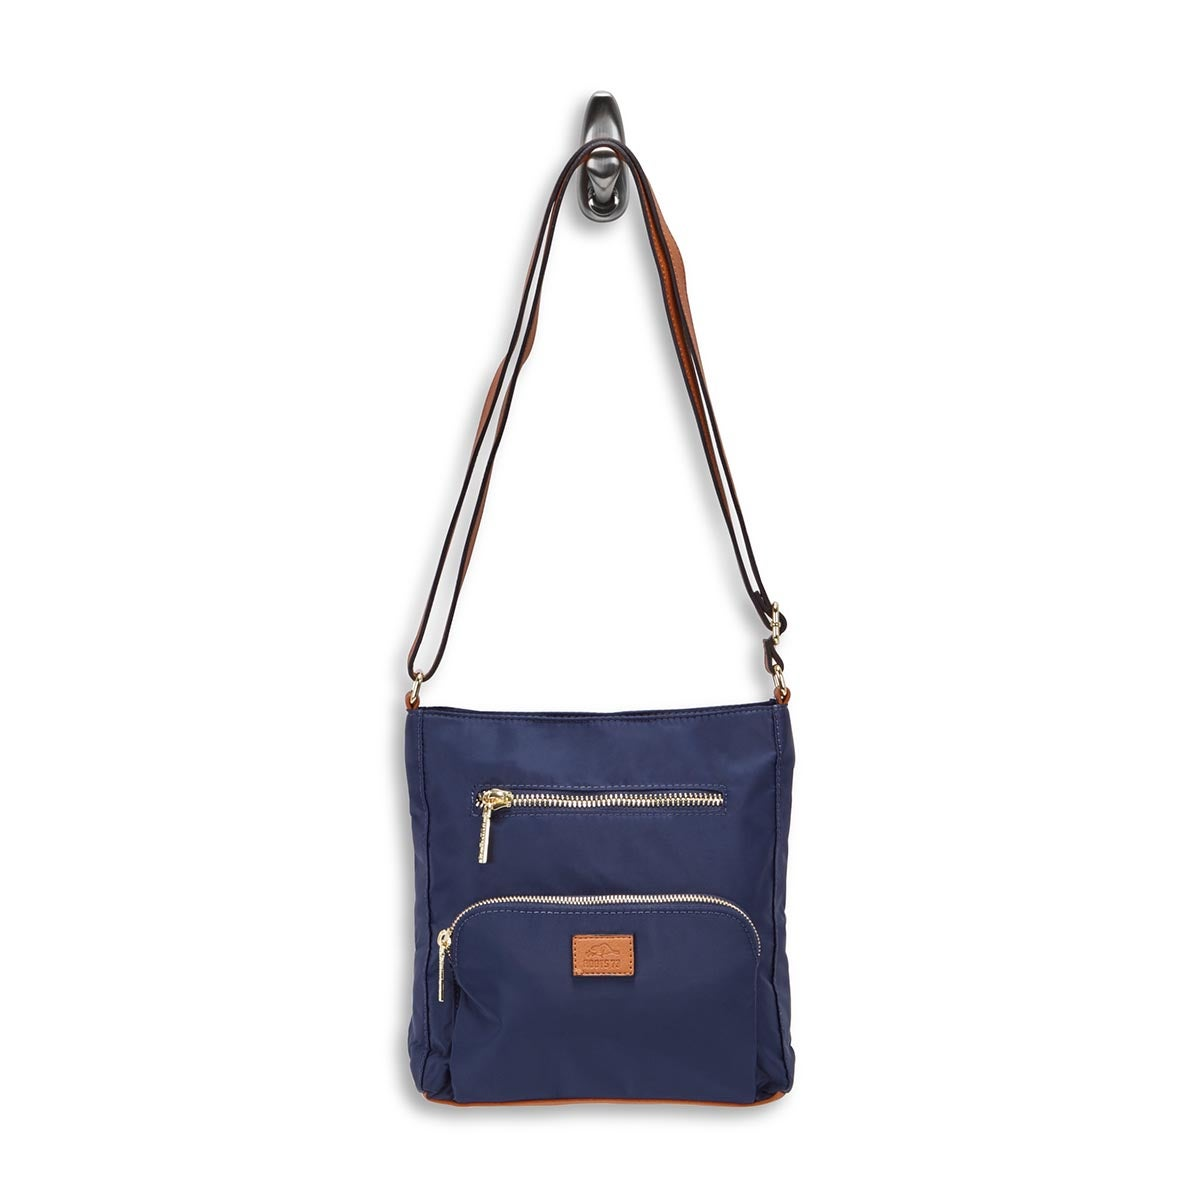 Lds Roots73 nvy 2 front pocket crossbody